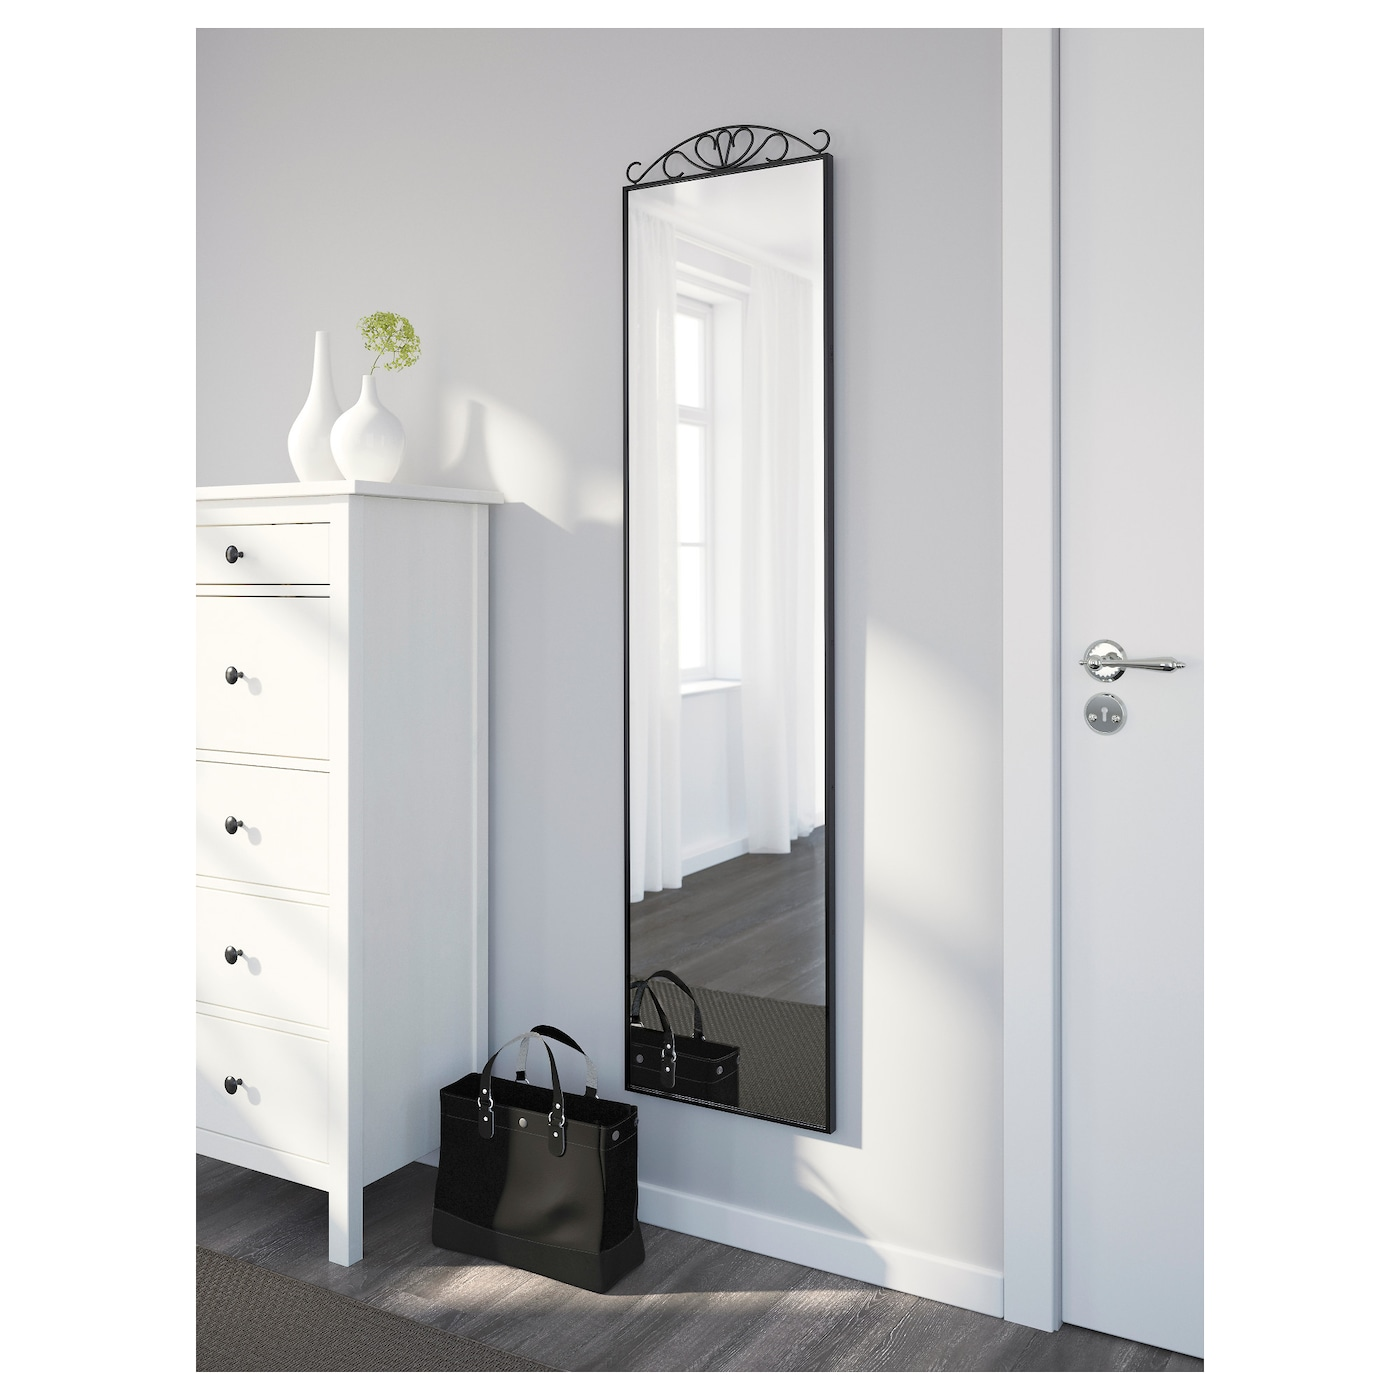 ikea white floor mirror. ikea karmsund standing mirror you can place the on floor or hang it ikea white e